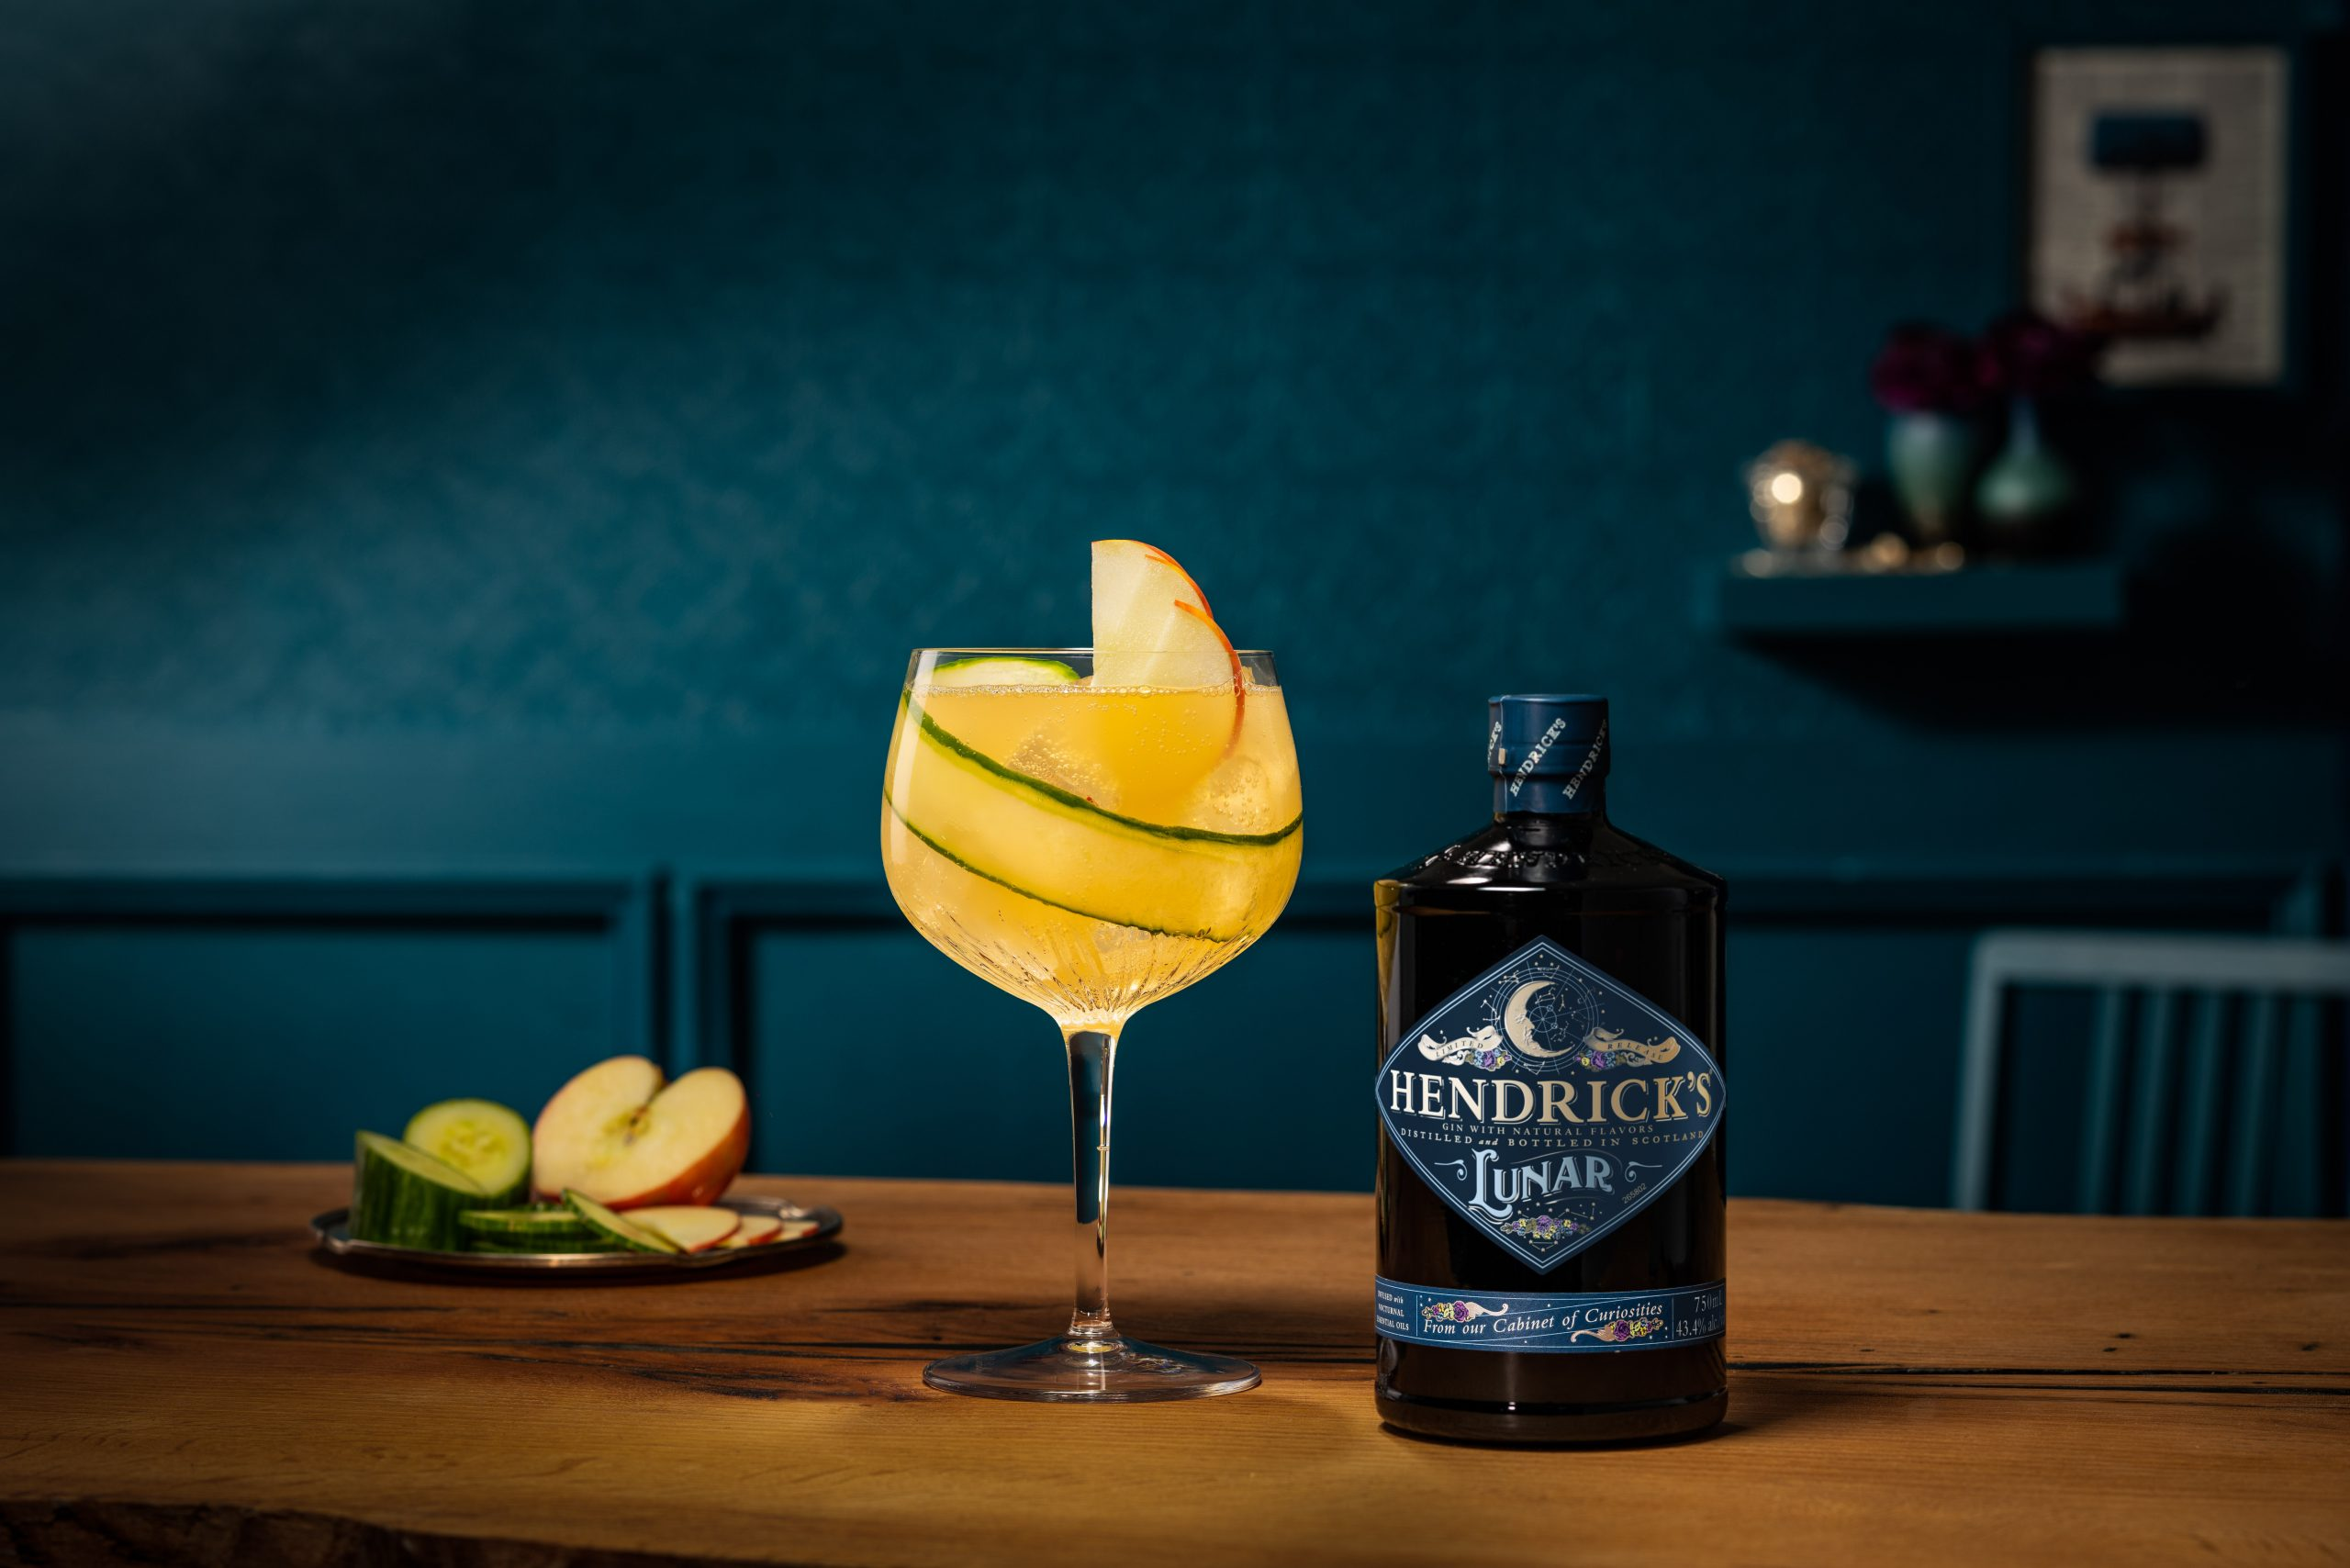 Hendrick's Gin Releases A Once In A Blue Moon Gin: Hendrick's Lunar photo